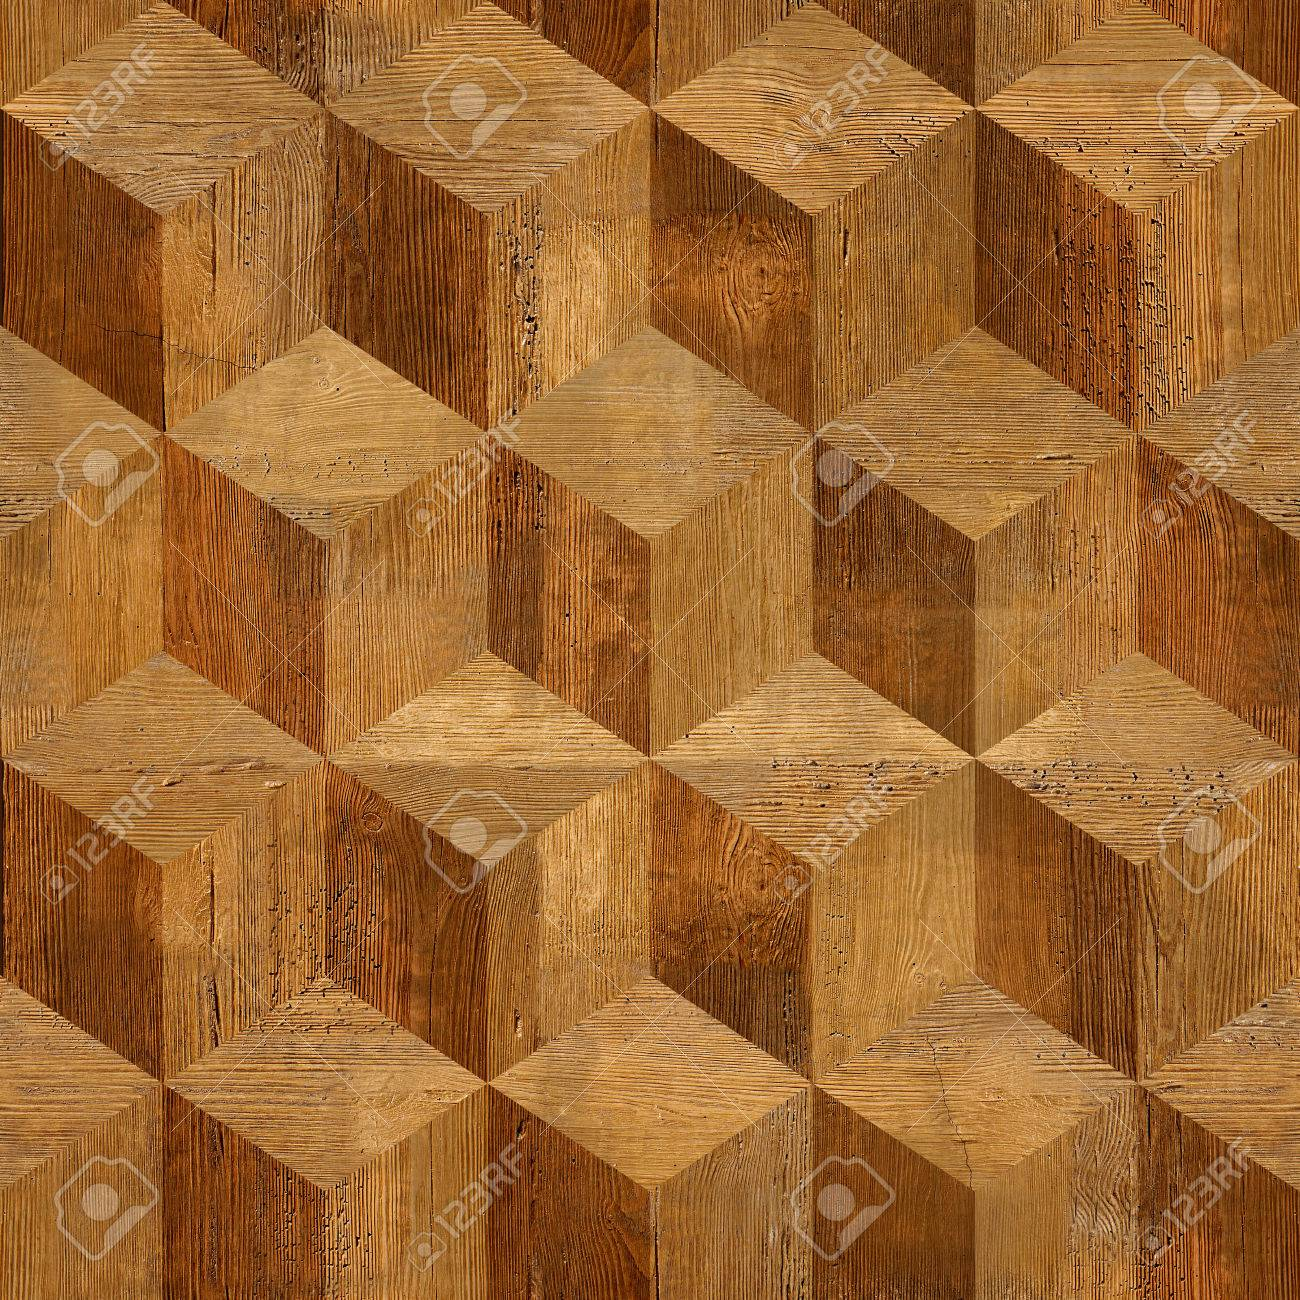 Wooden parquet blocks rosewood stacked for seamless background - 32957476